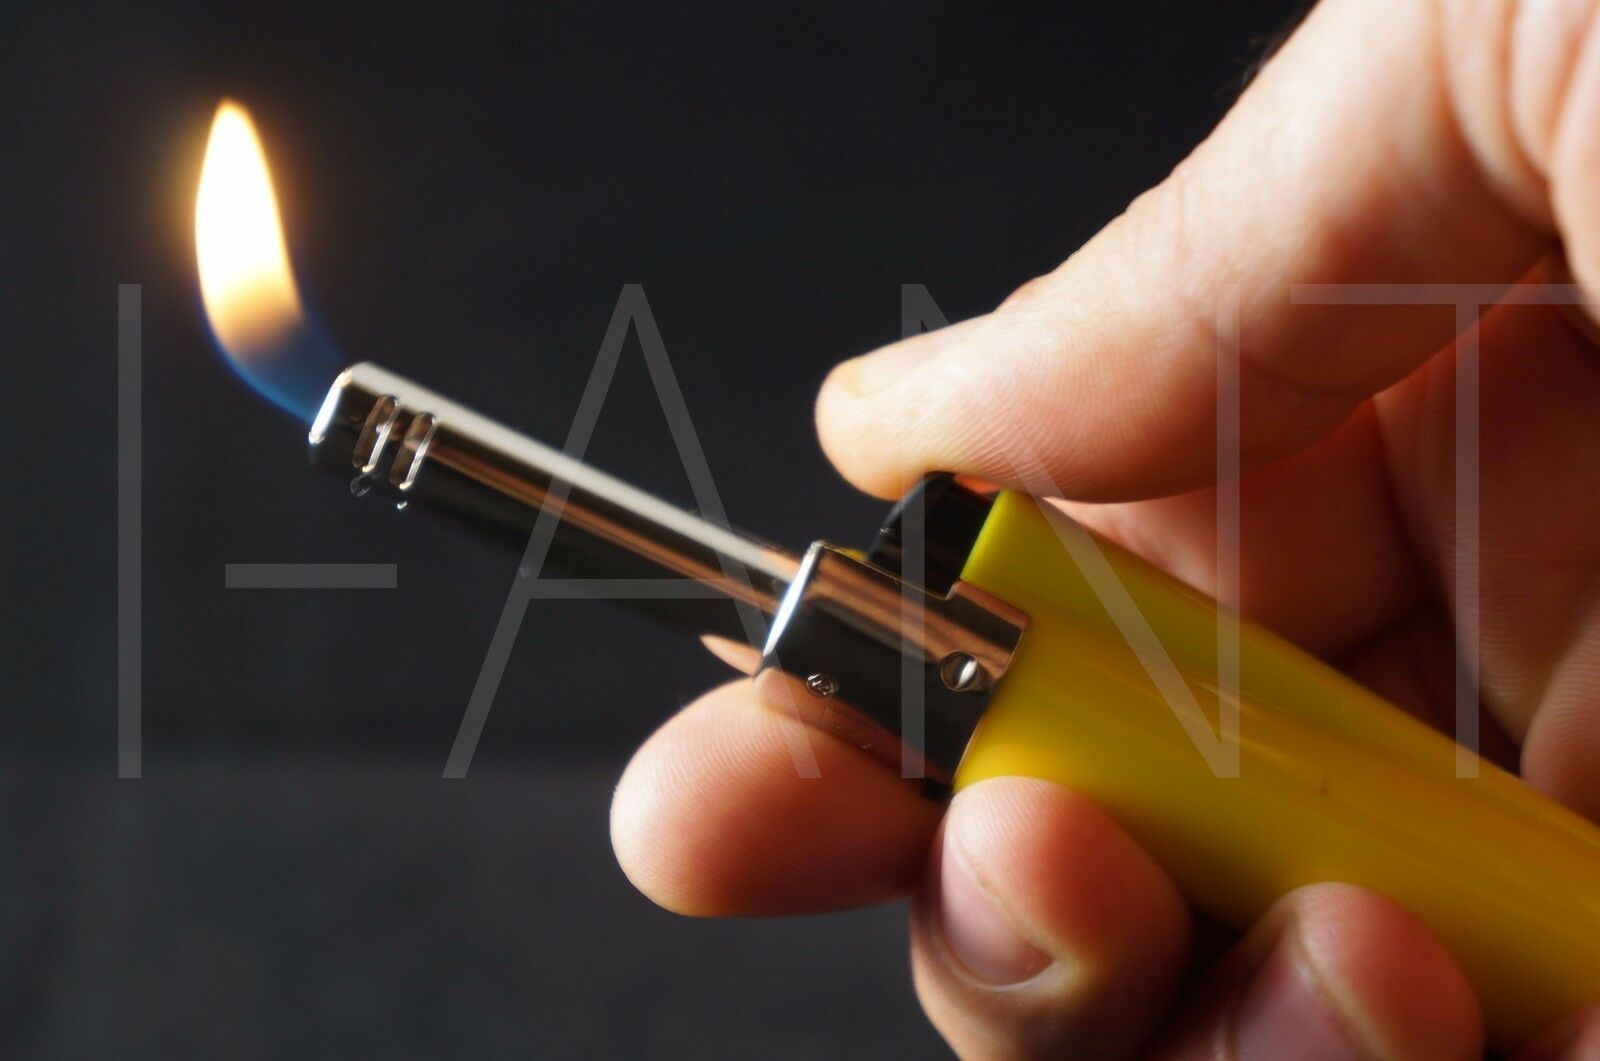 CLIPPER MINI TUBE PIEZO IGNITION REFILLABLE ADJUSTABLE FLAME UTILITY LIGHTER